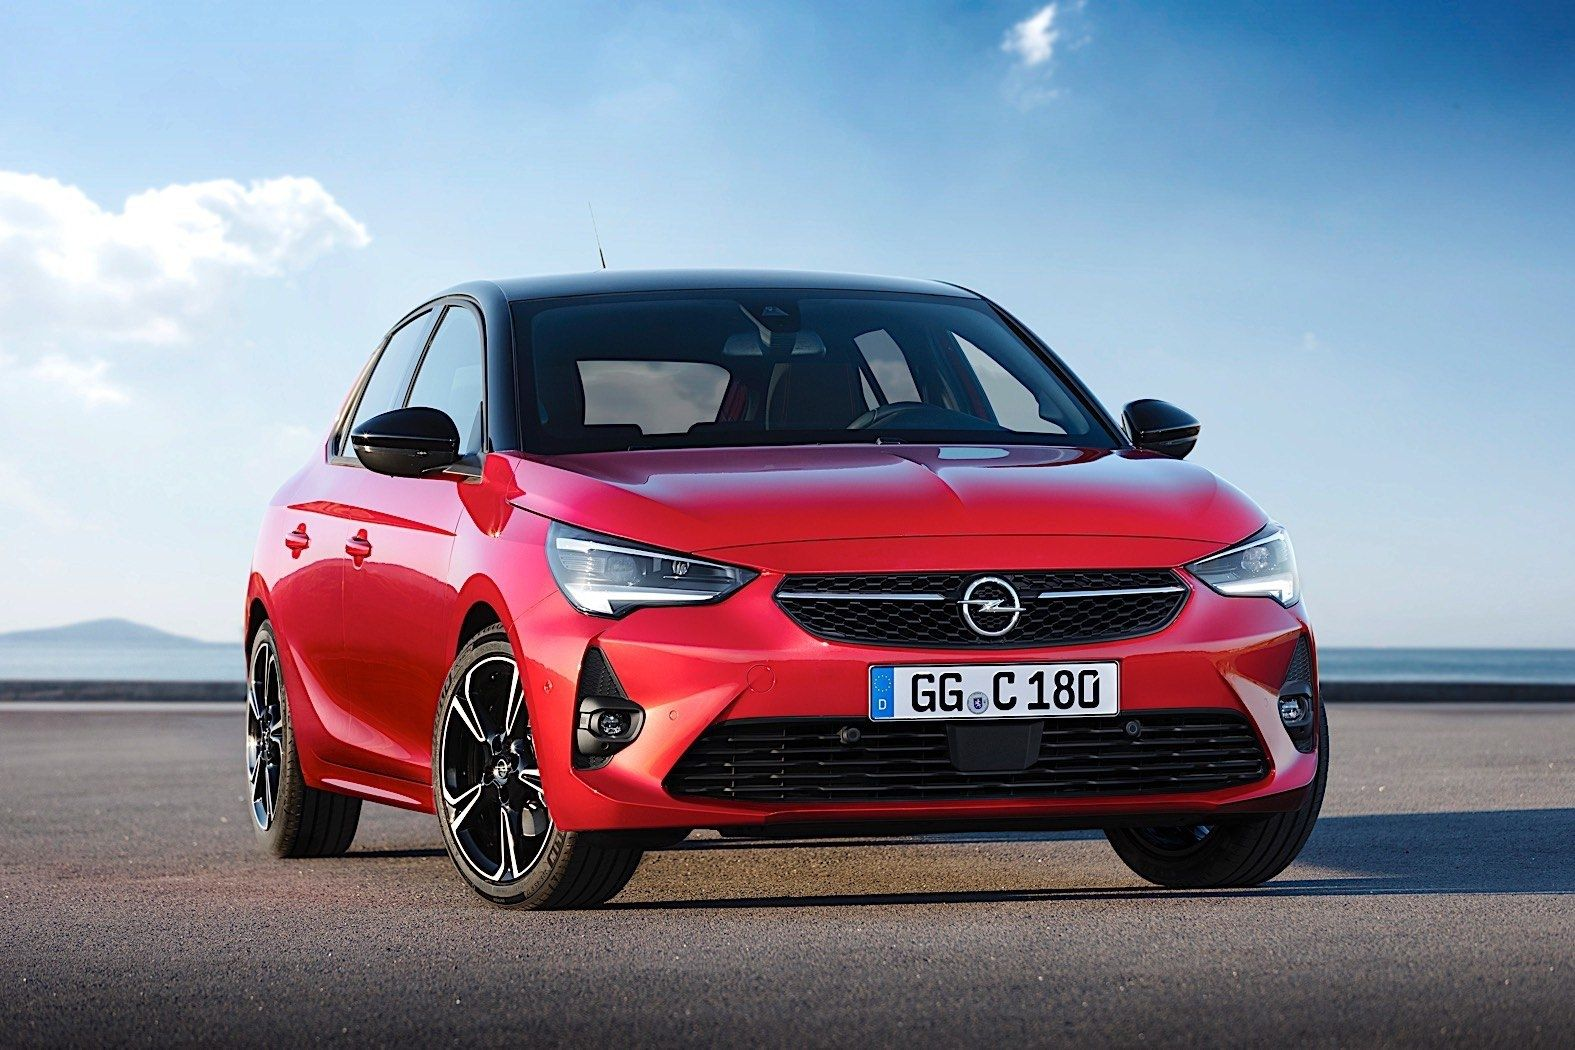 When Will The Opel Astra Opc 2020 Be Released Opel Corsa Opel